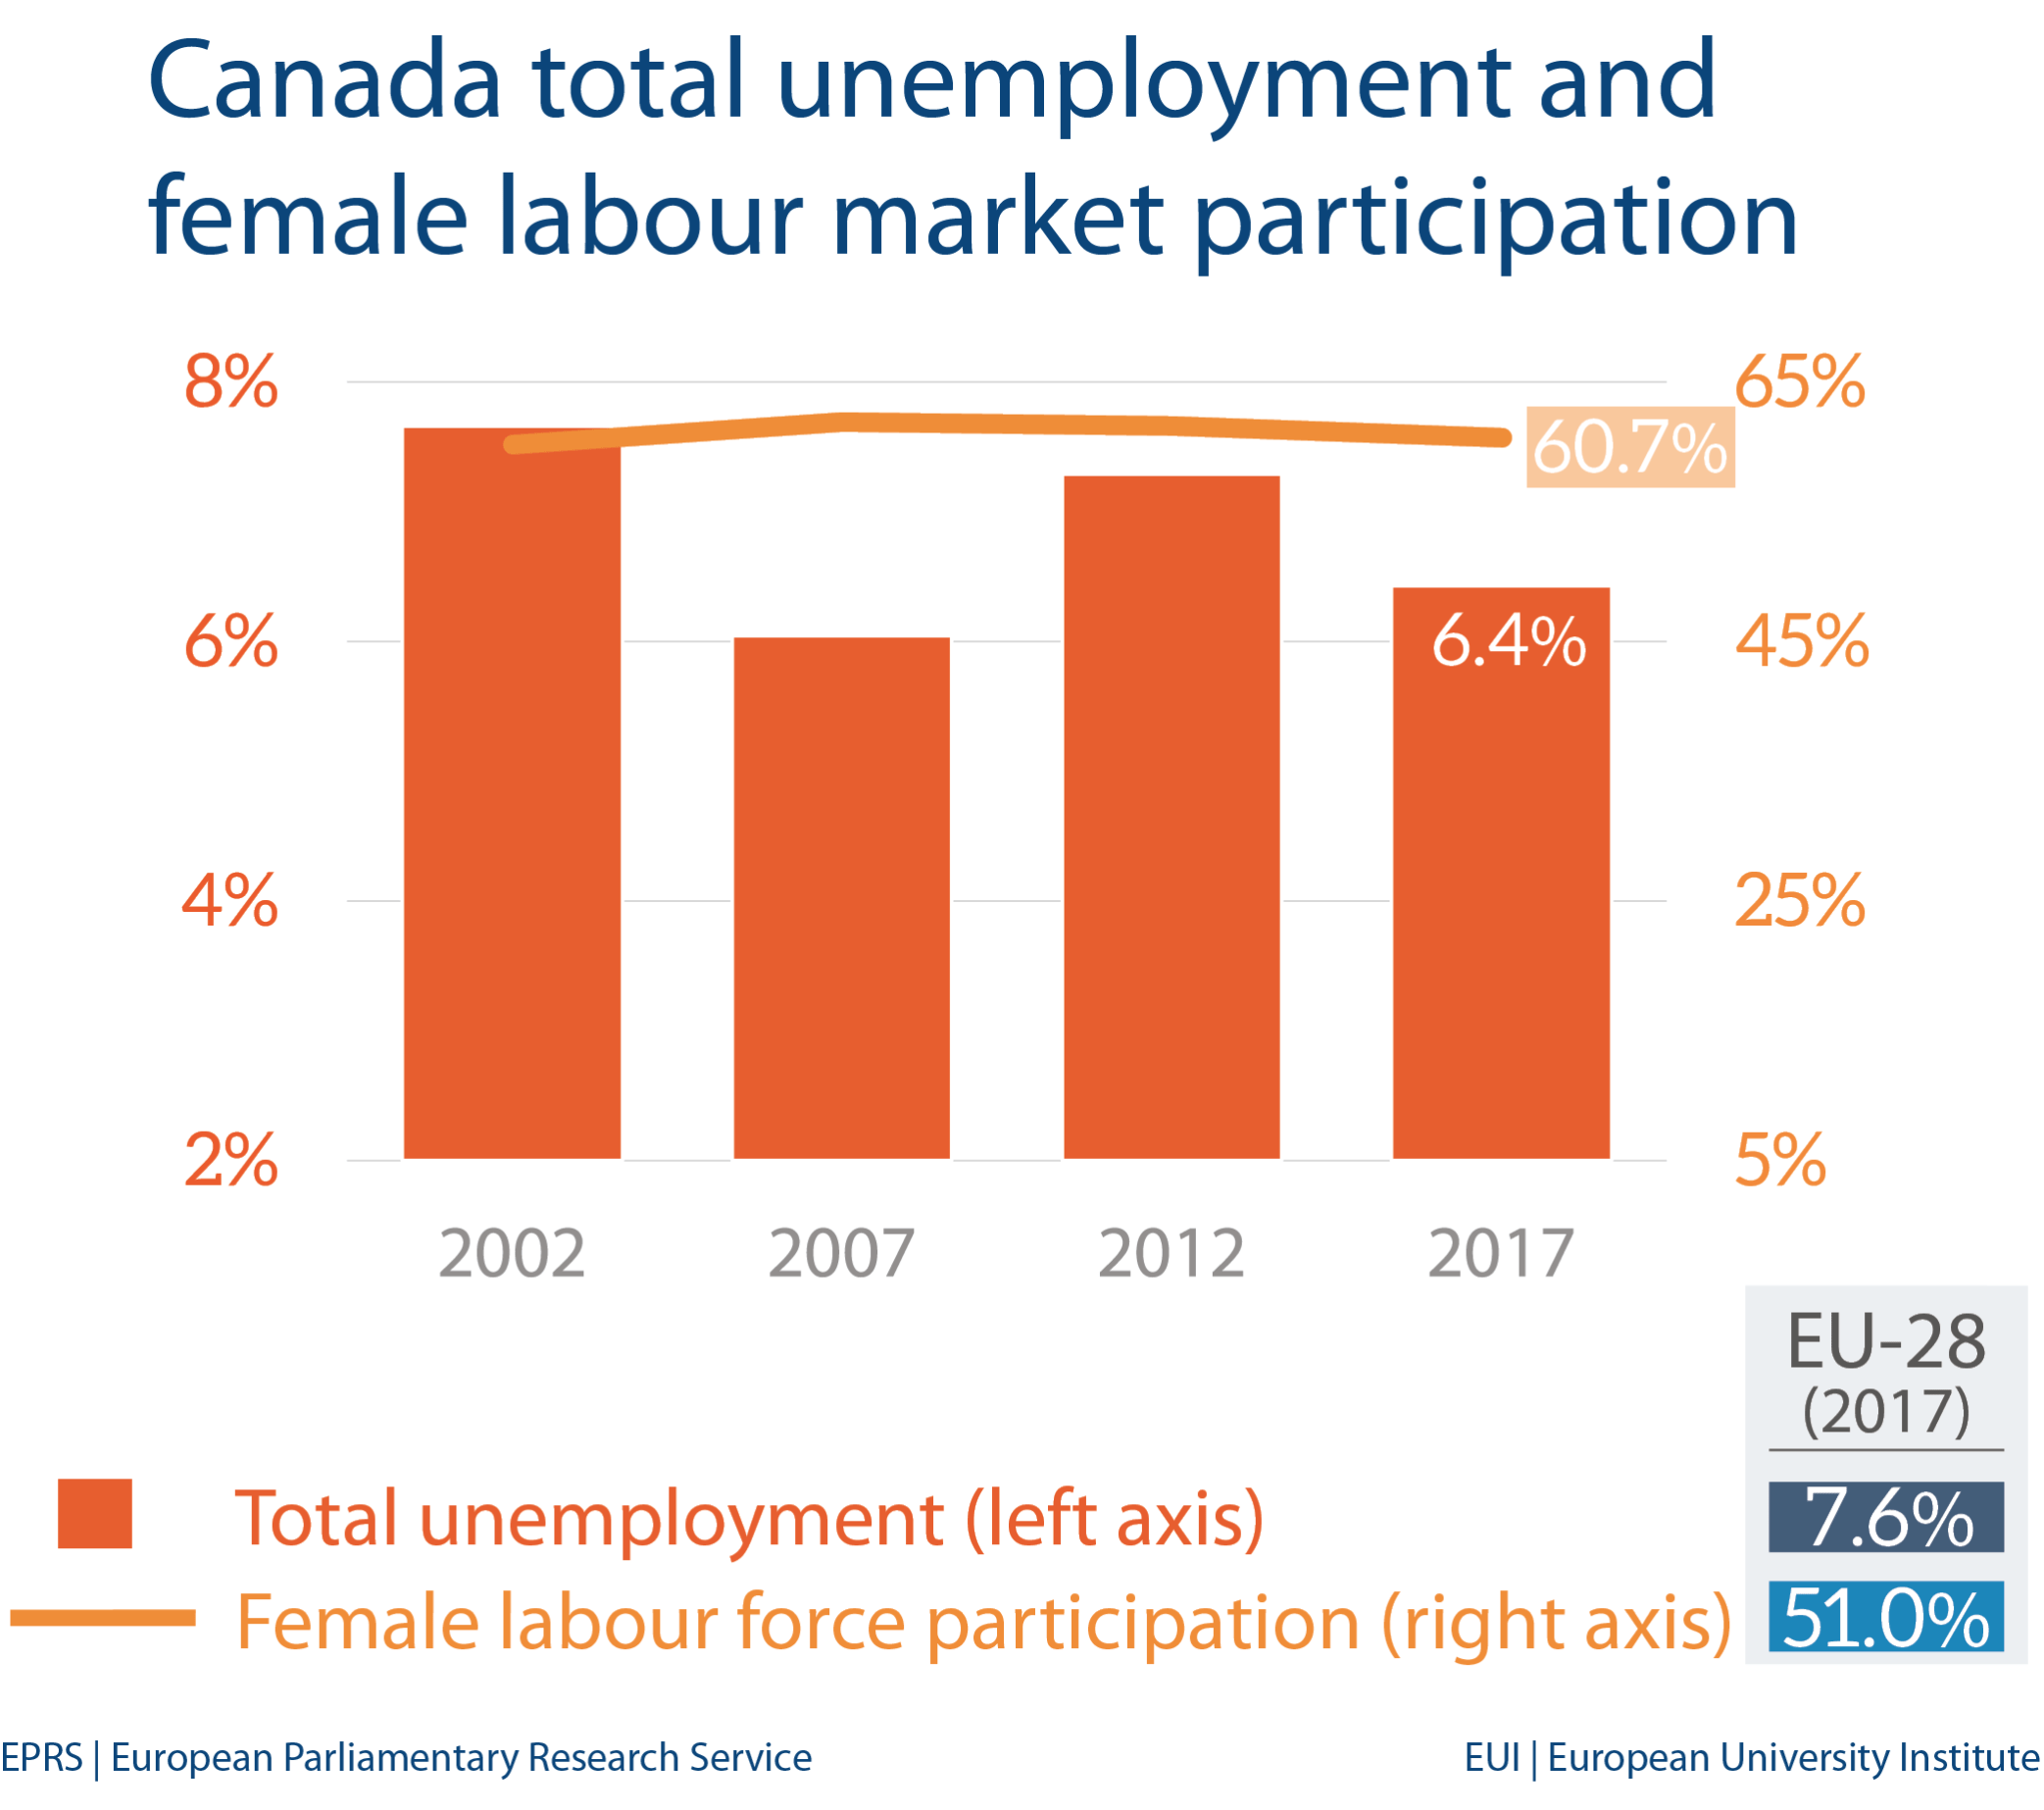 Fig 2 - Unemployment and female labour market - Canada